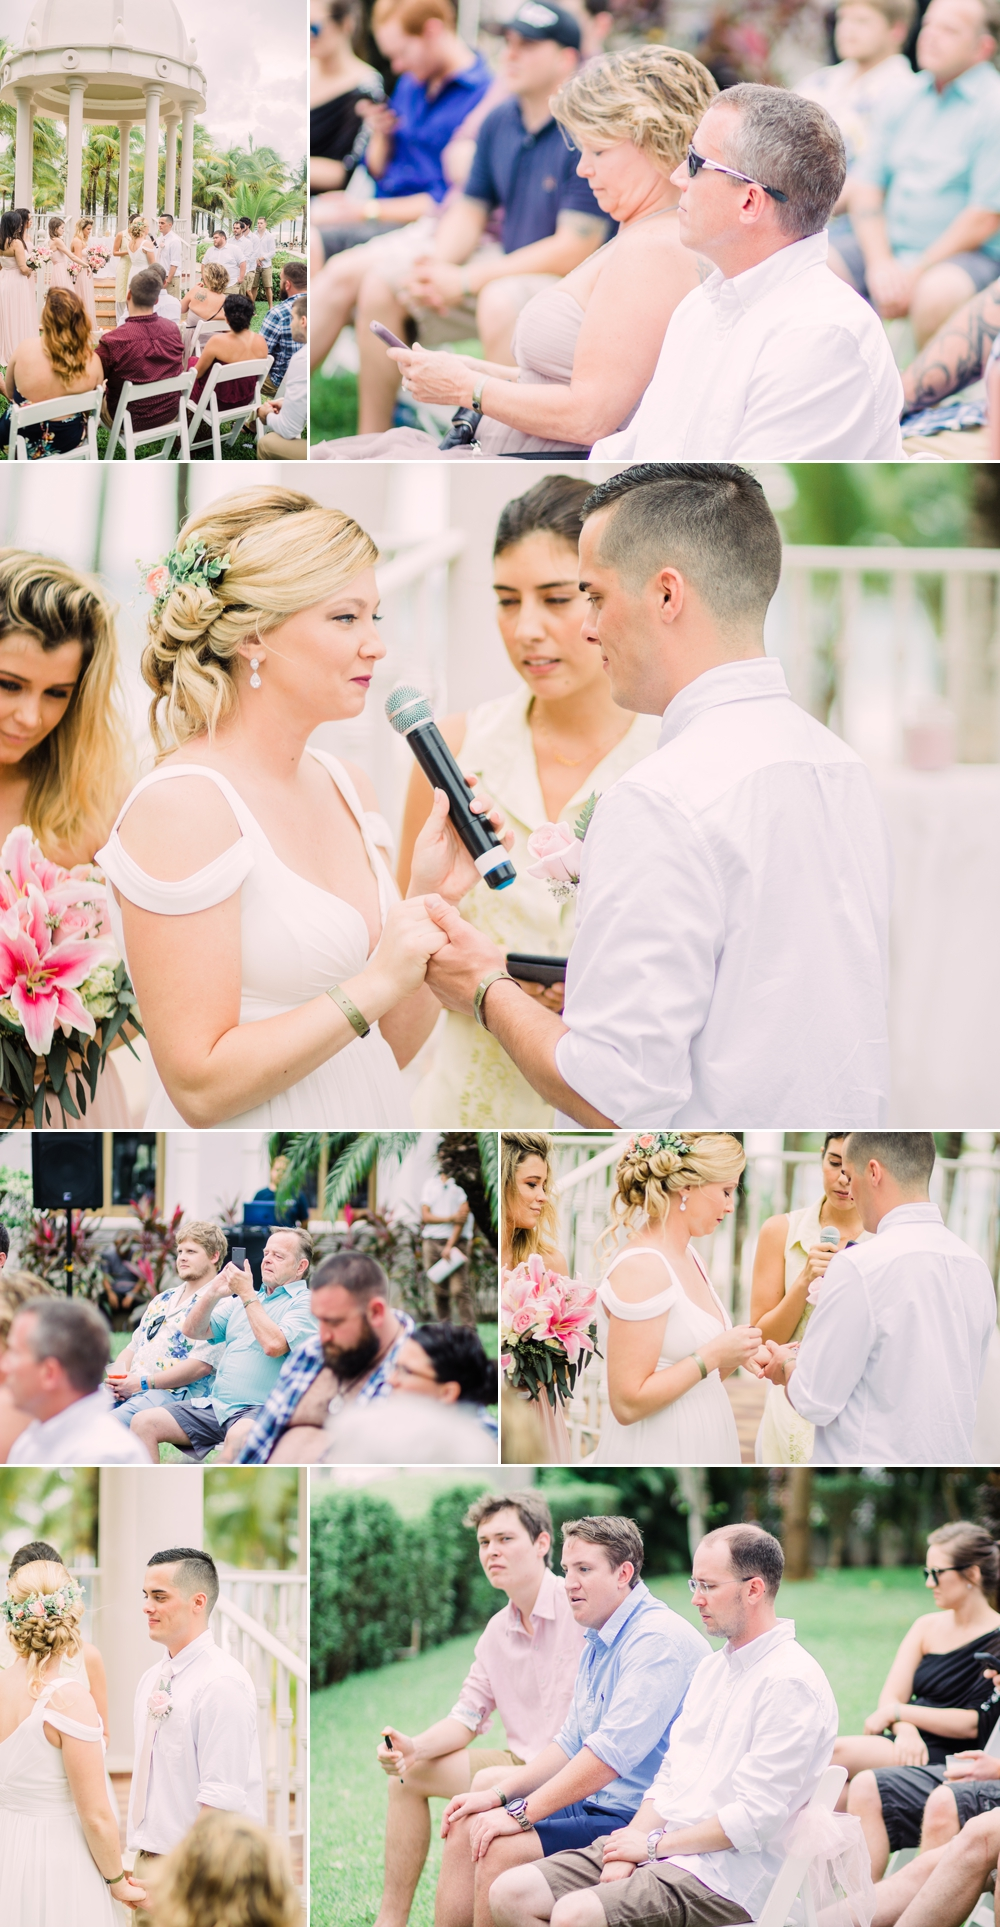 Destination Wedding Photography_Riu Palace Riviera Maya_Playa Del Carmen_Mexico_vows and rings during ceremony under gazebo_Destination Wedding Photographer.jpg